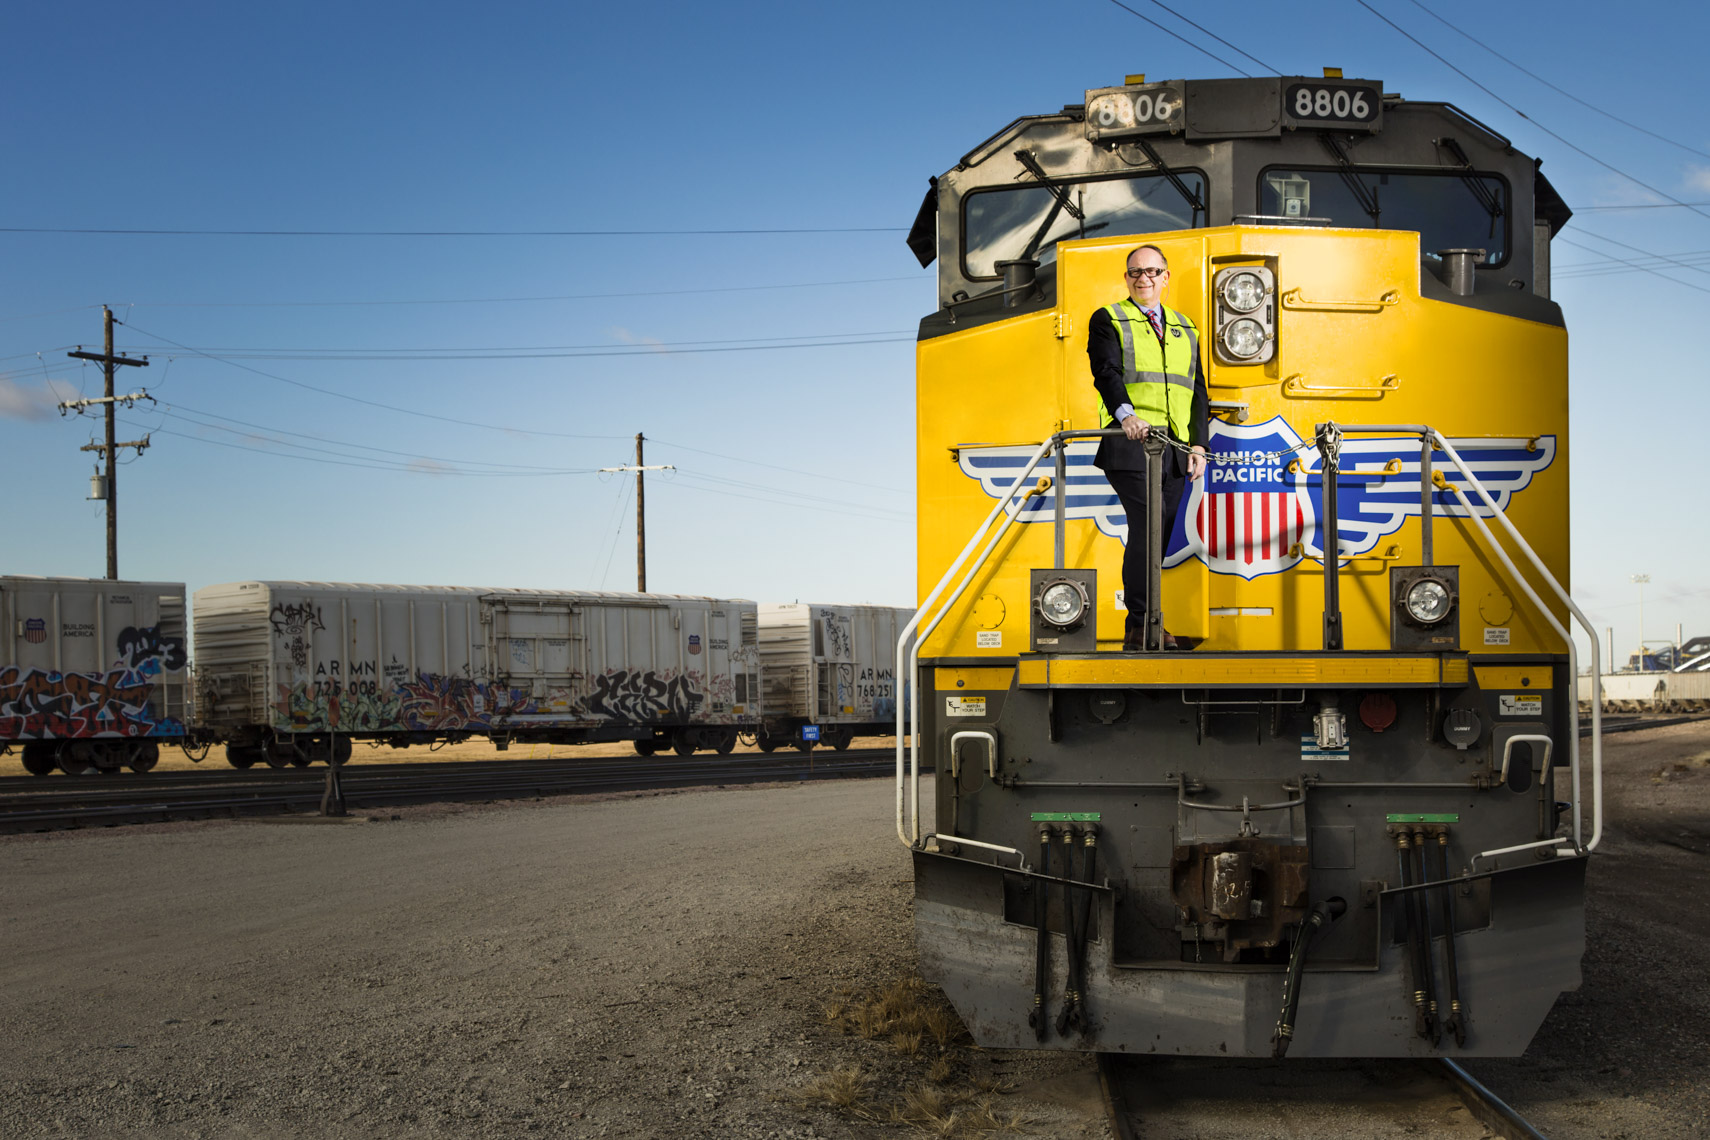 Portrait of Union Pacific President and Chief Executive Officer (CEO) Jack Koraleski